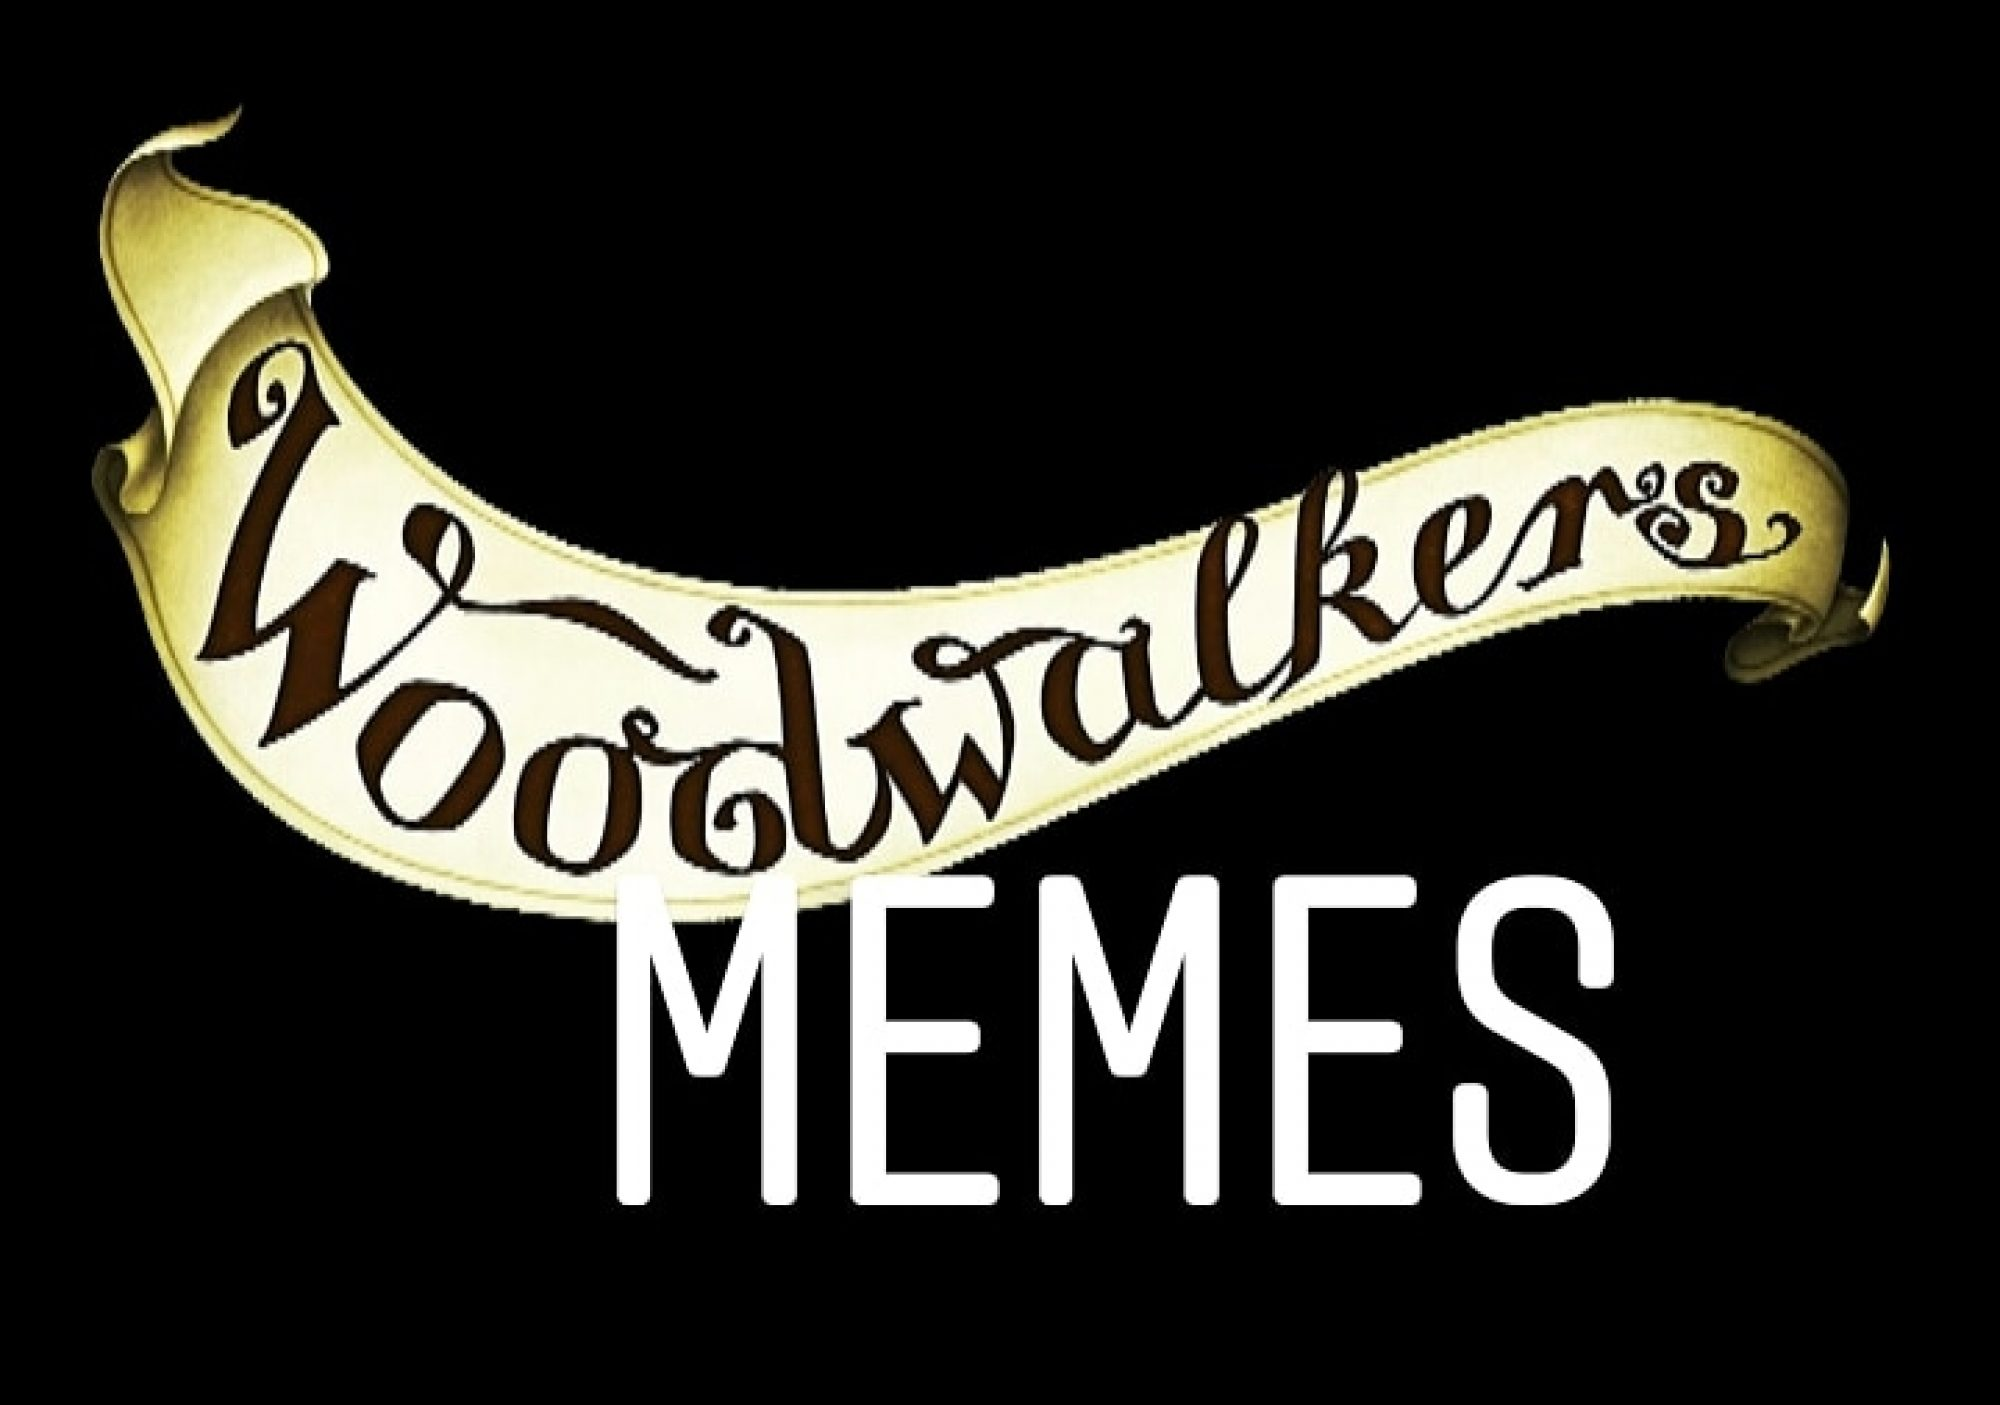 Woodwalkers joke